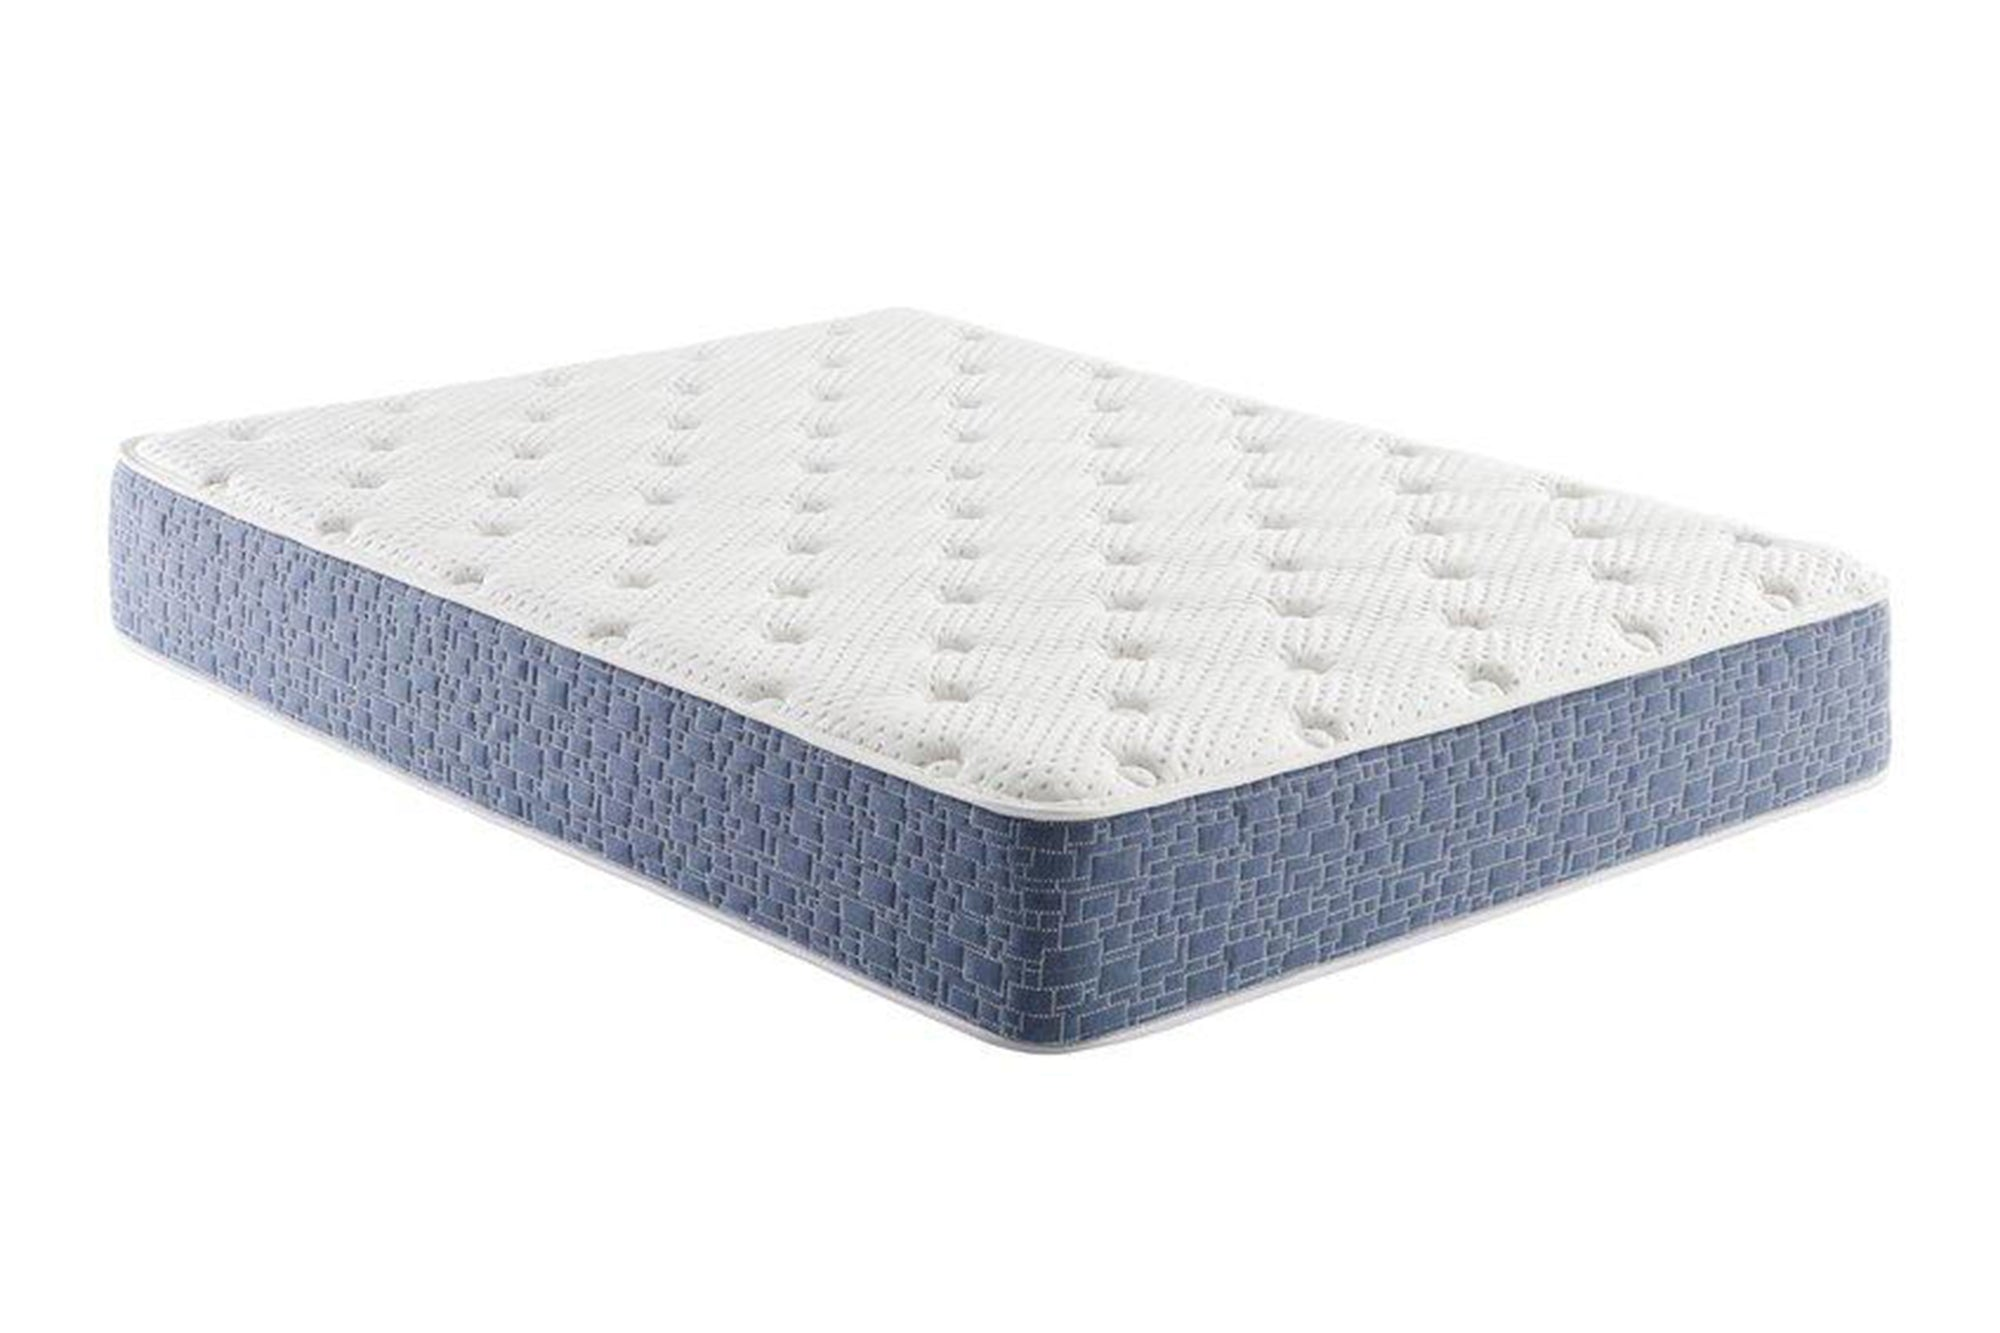 VENINI BEDDING 11-inch Medium Firm Tight Top Hybrid Gel Memory Foam and Spring Mattress #18117894